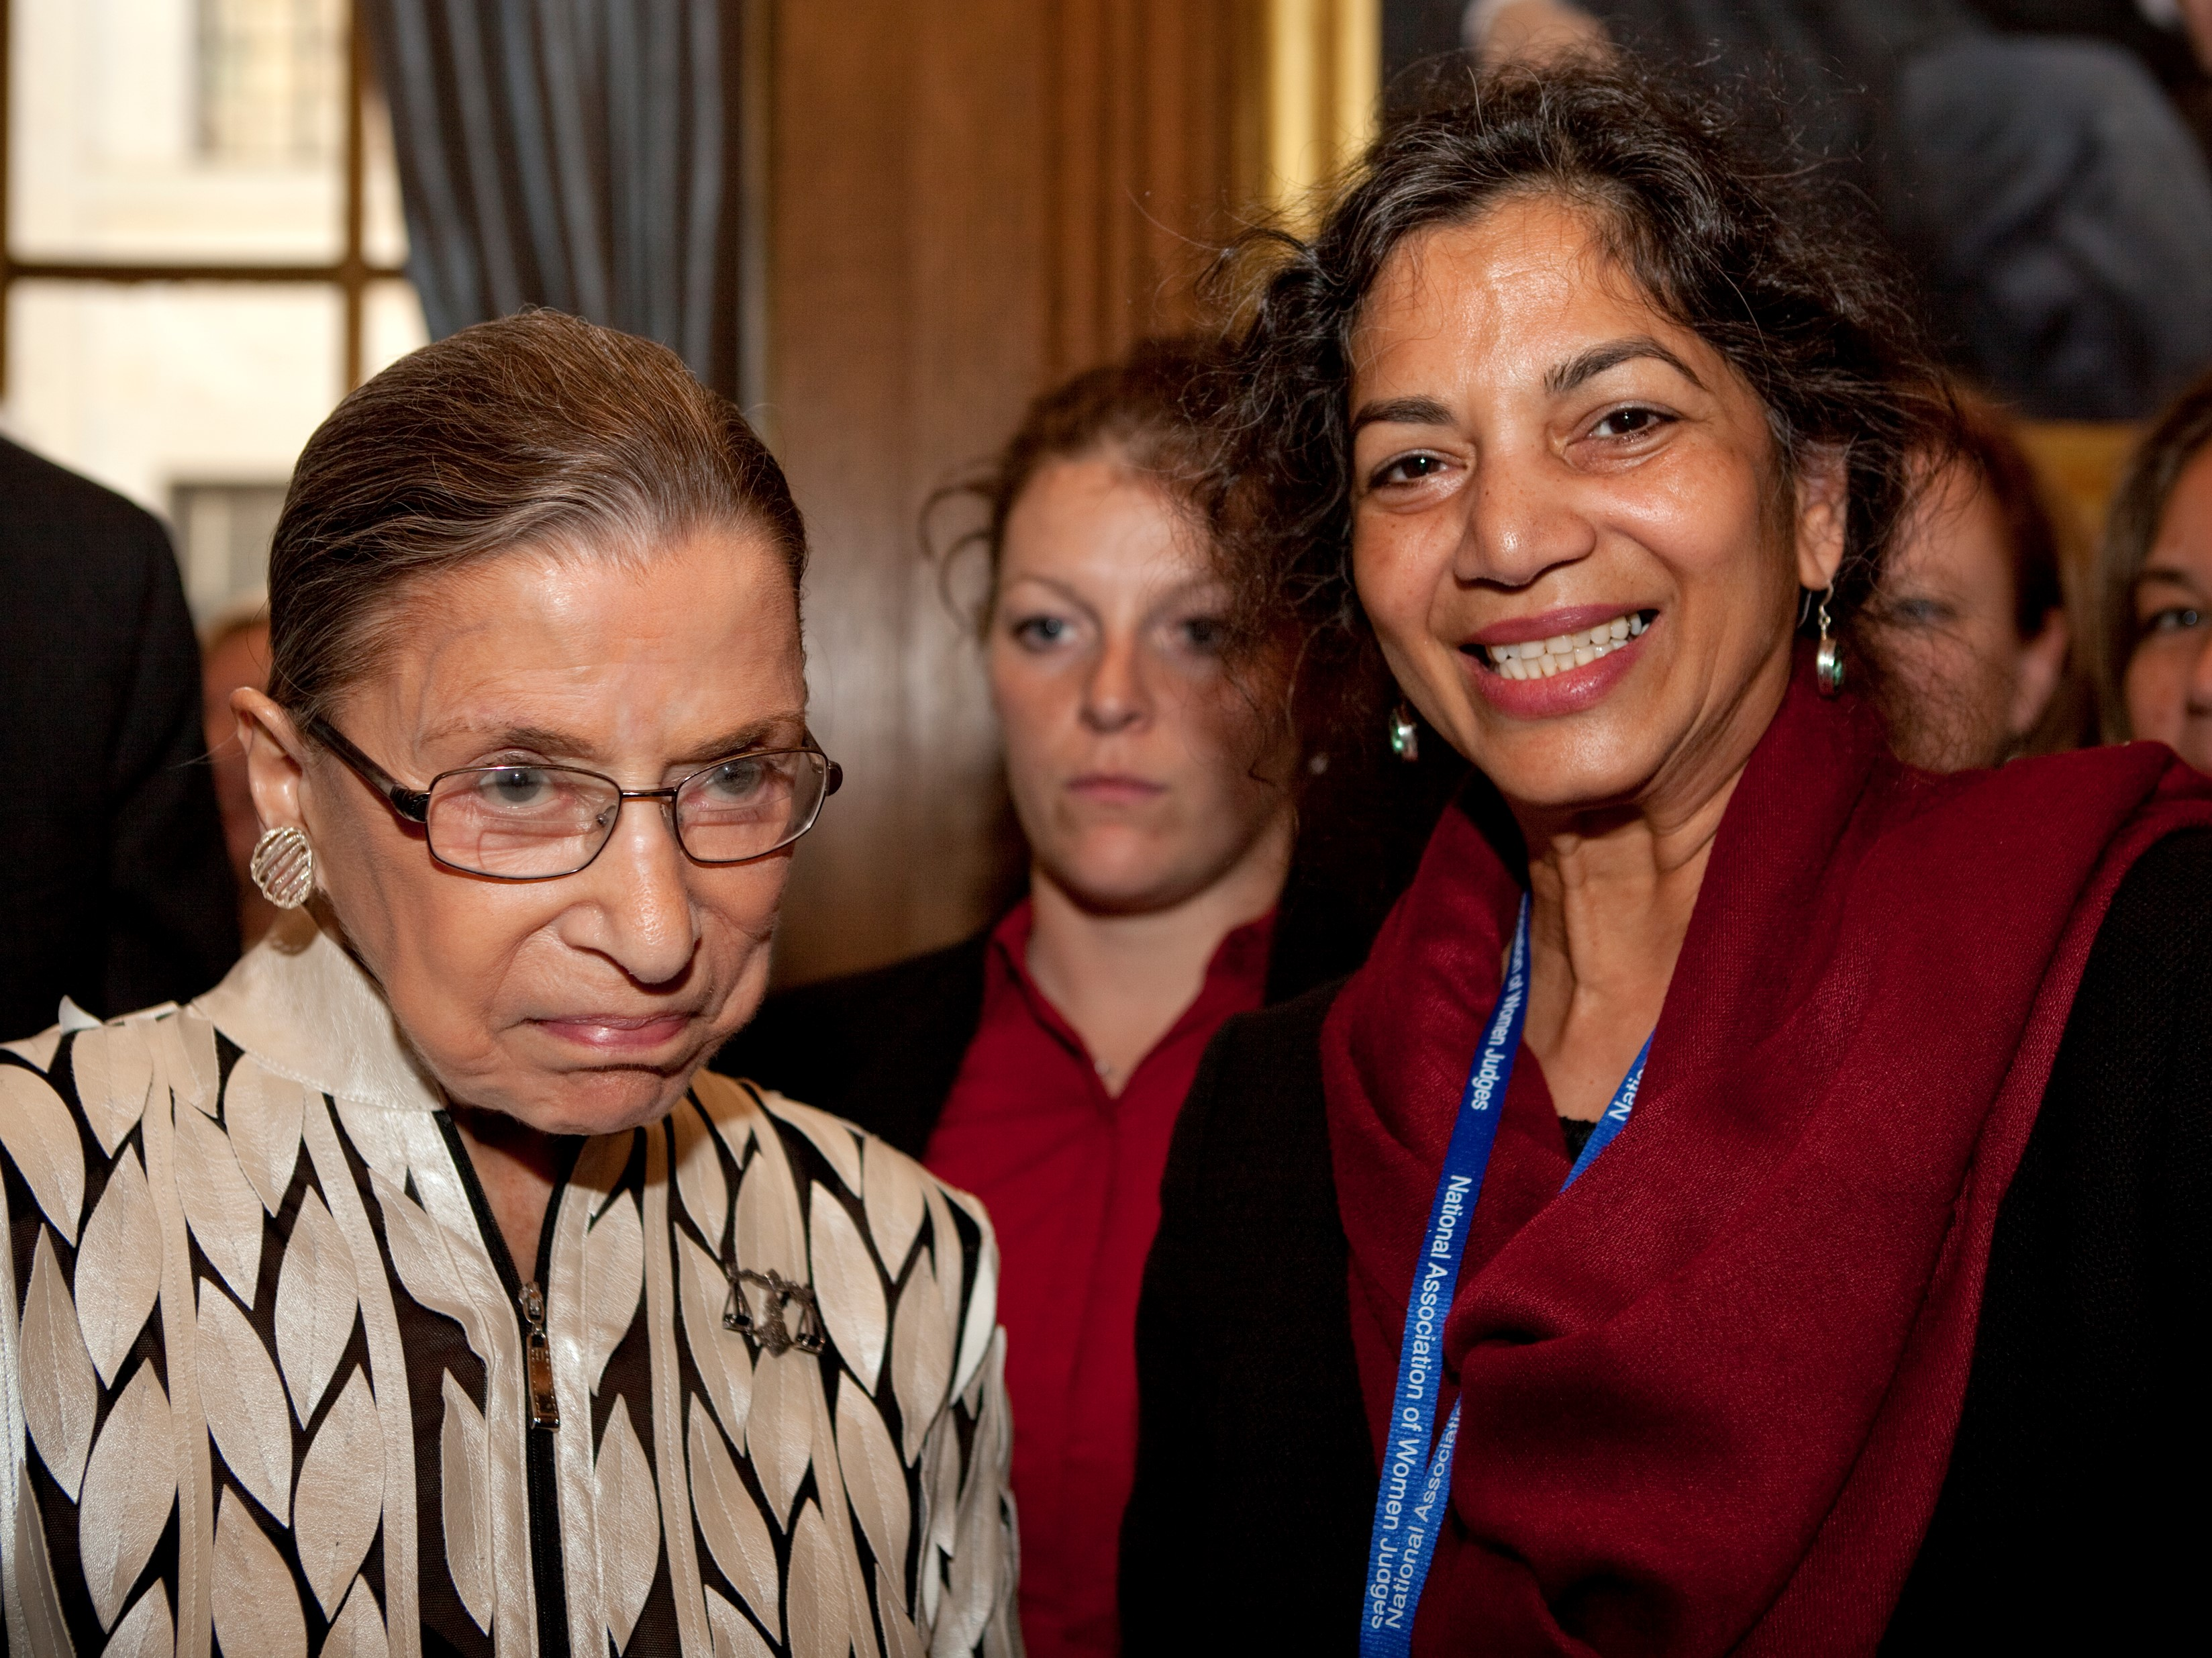 justice-ginsburg-and-judge-dsouza-2.jpg